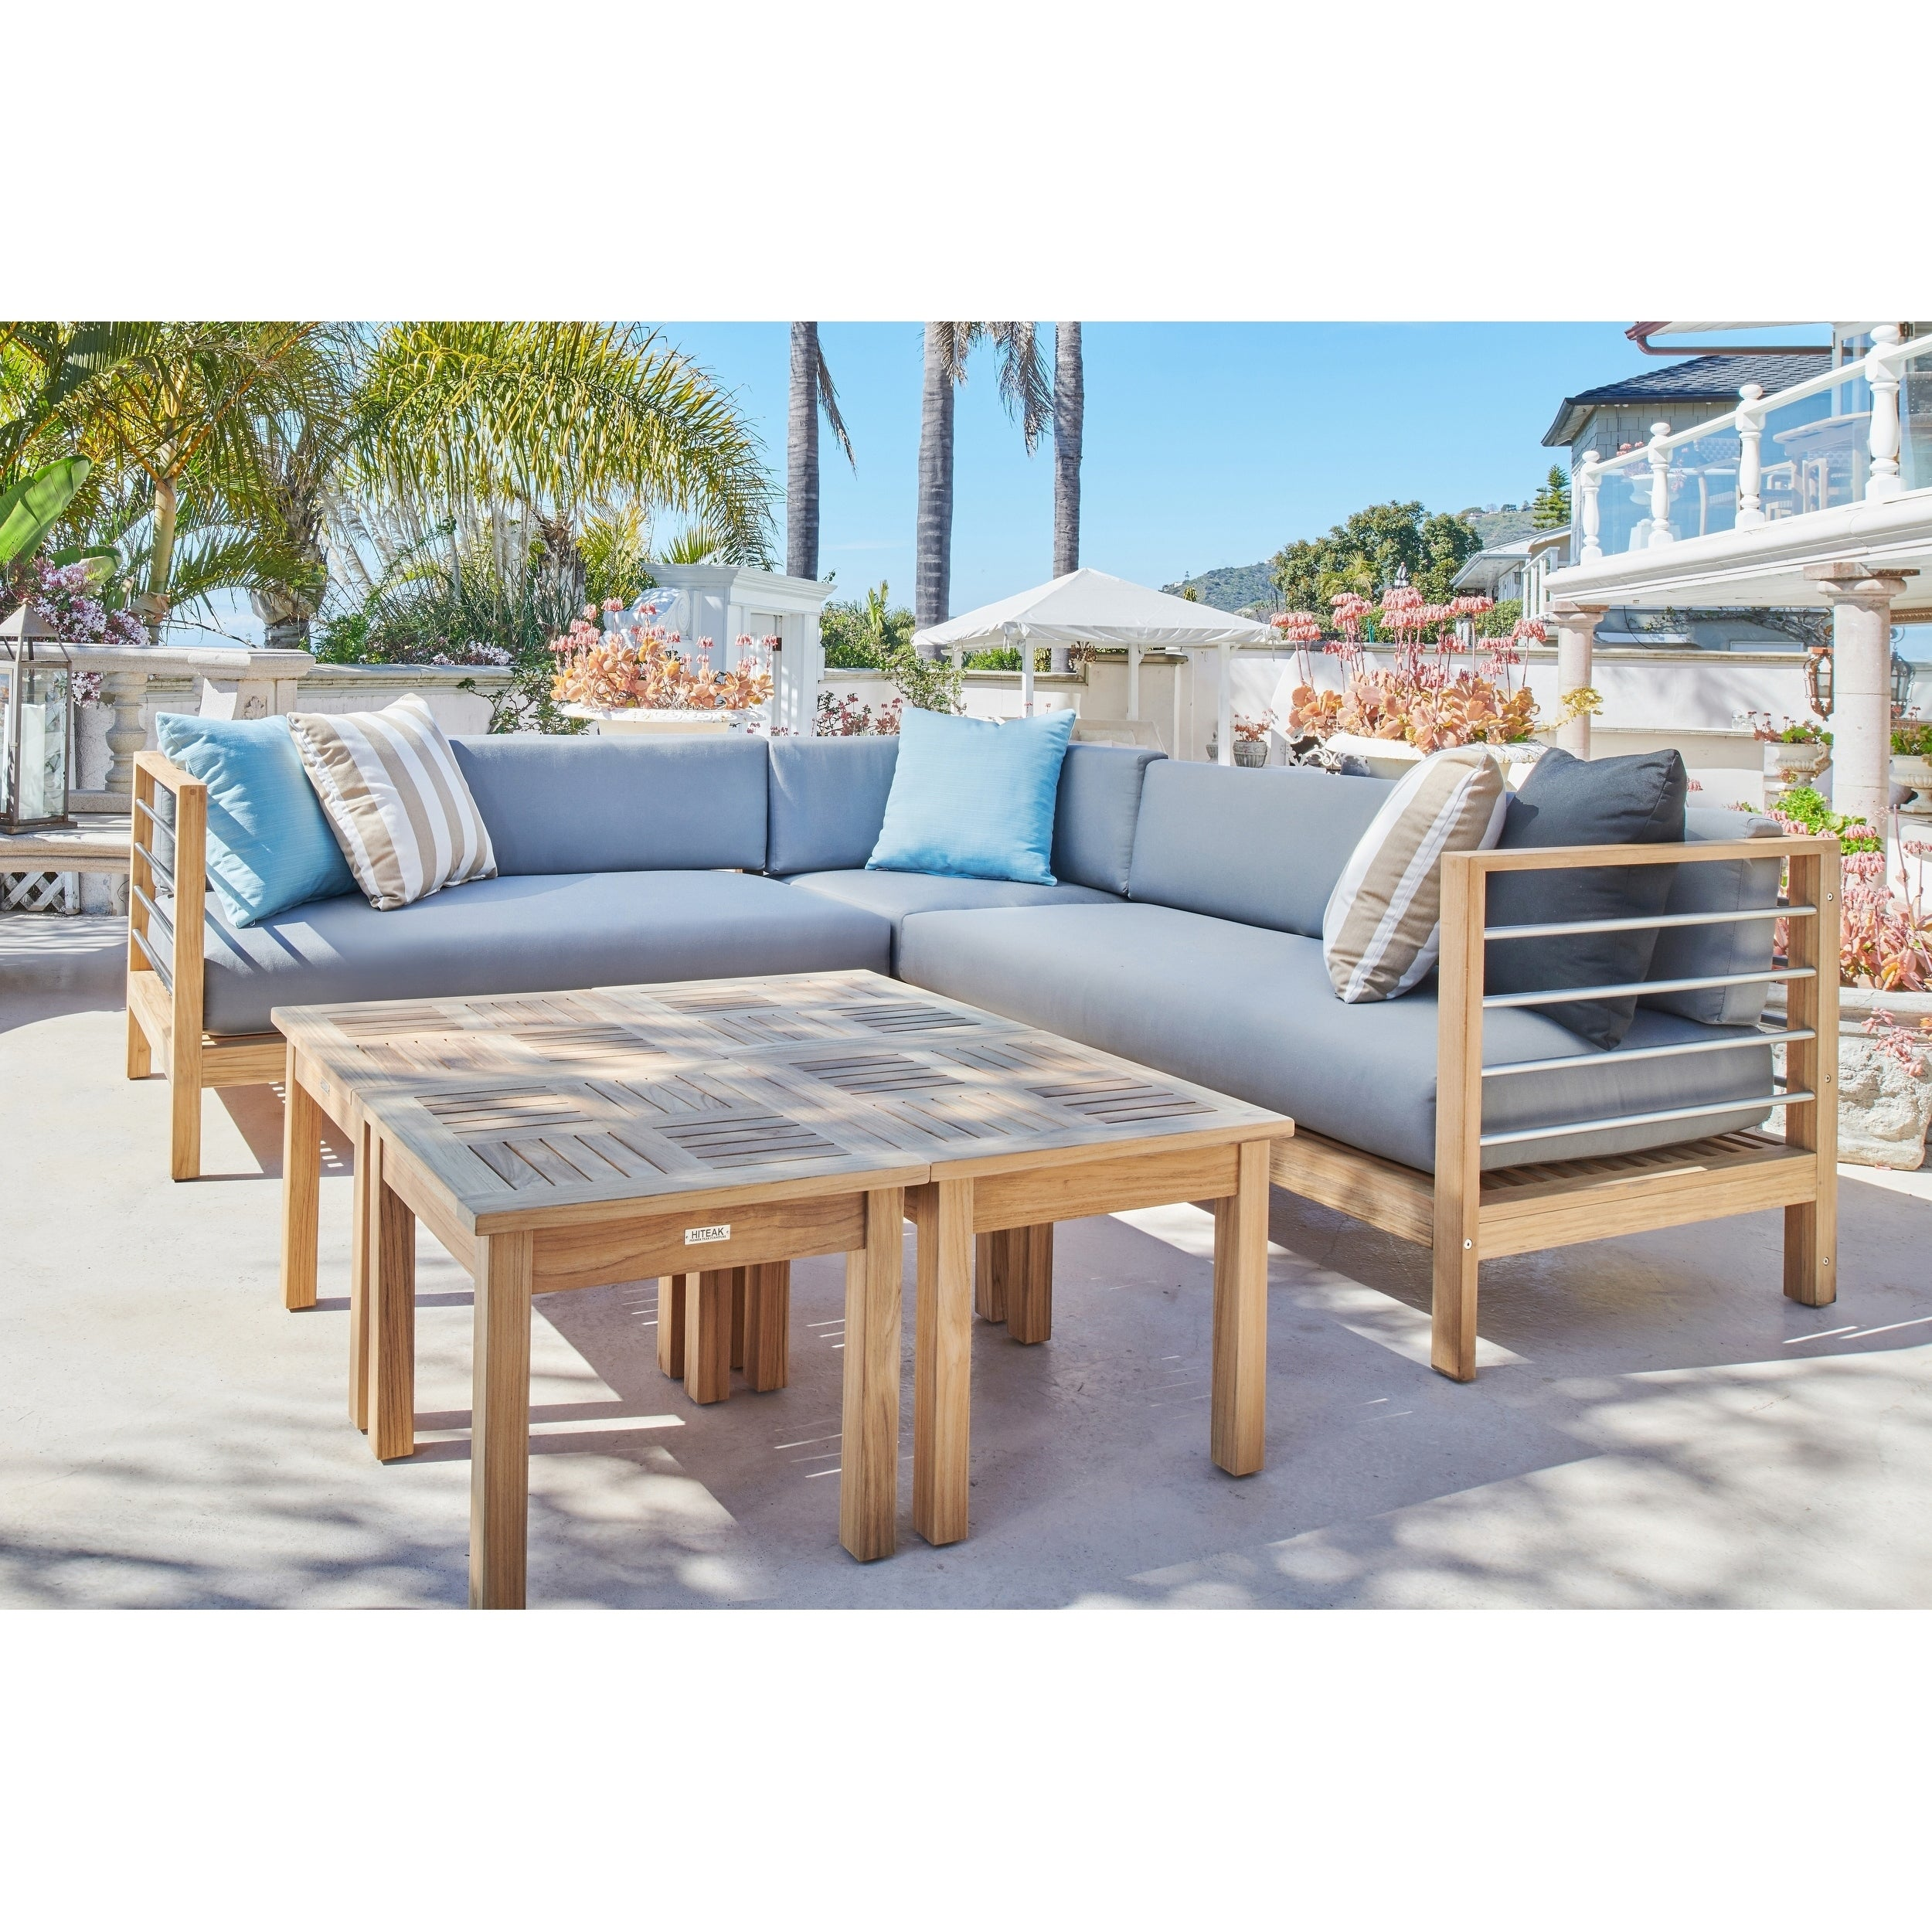 Soho 3 Piece Teak Outdoor Sectional Sofa Set with Charcoal Cushions